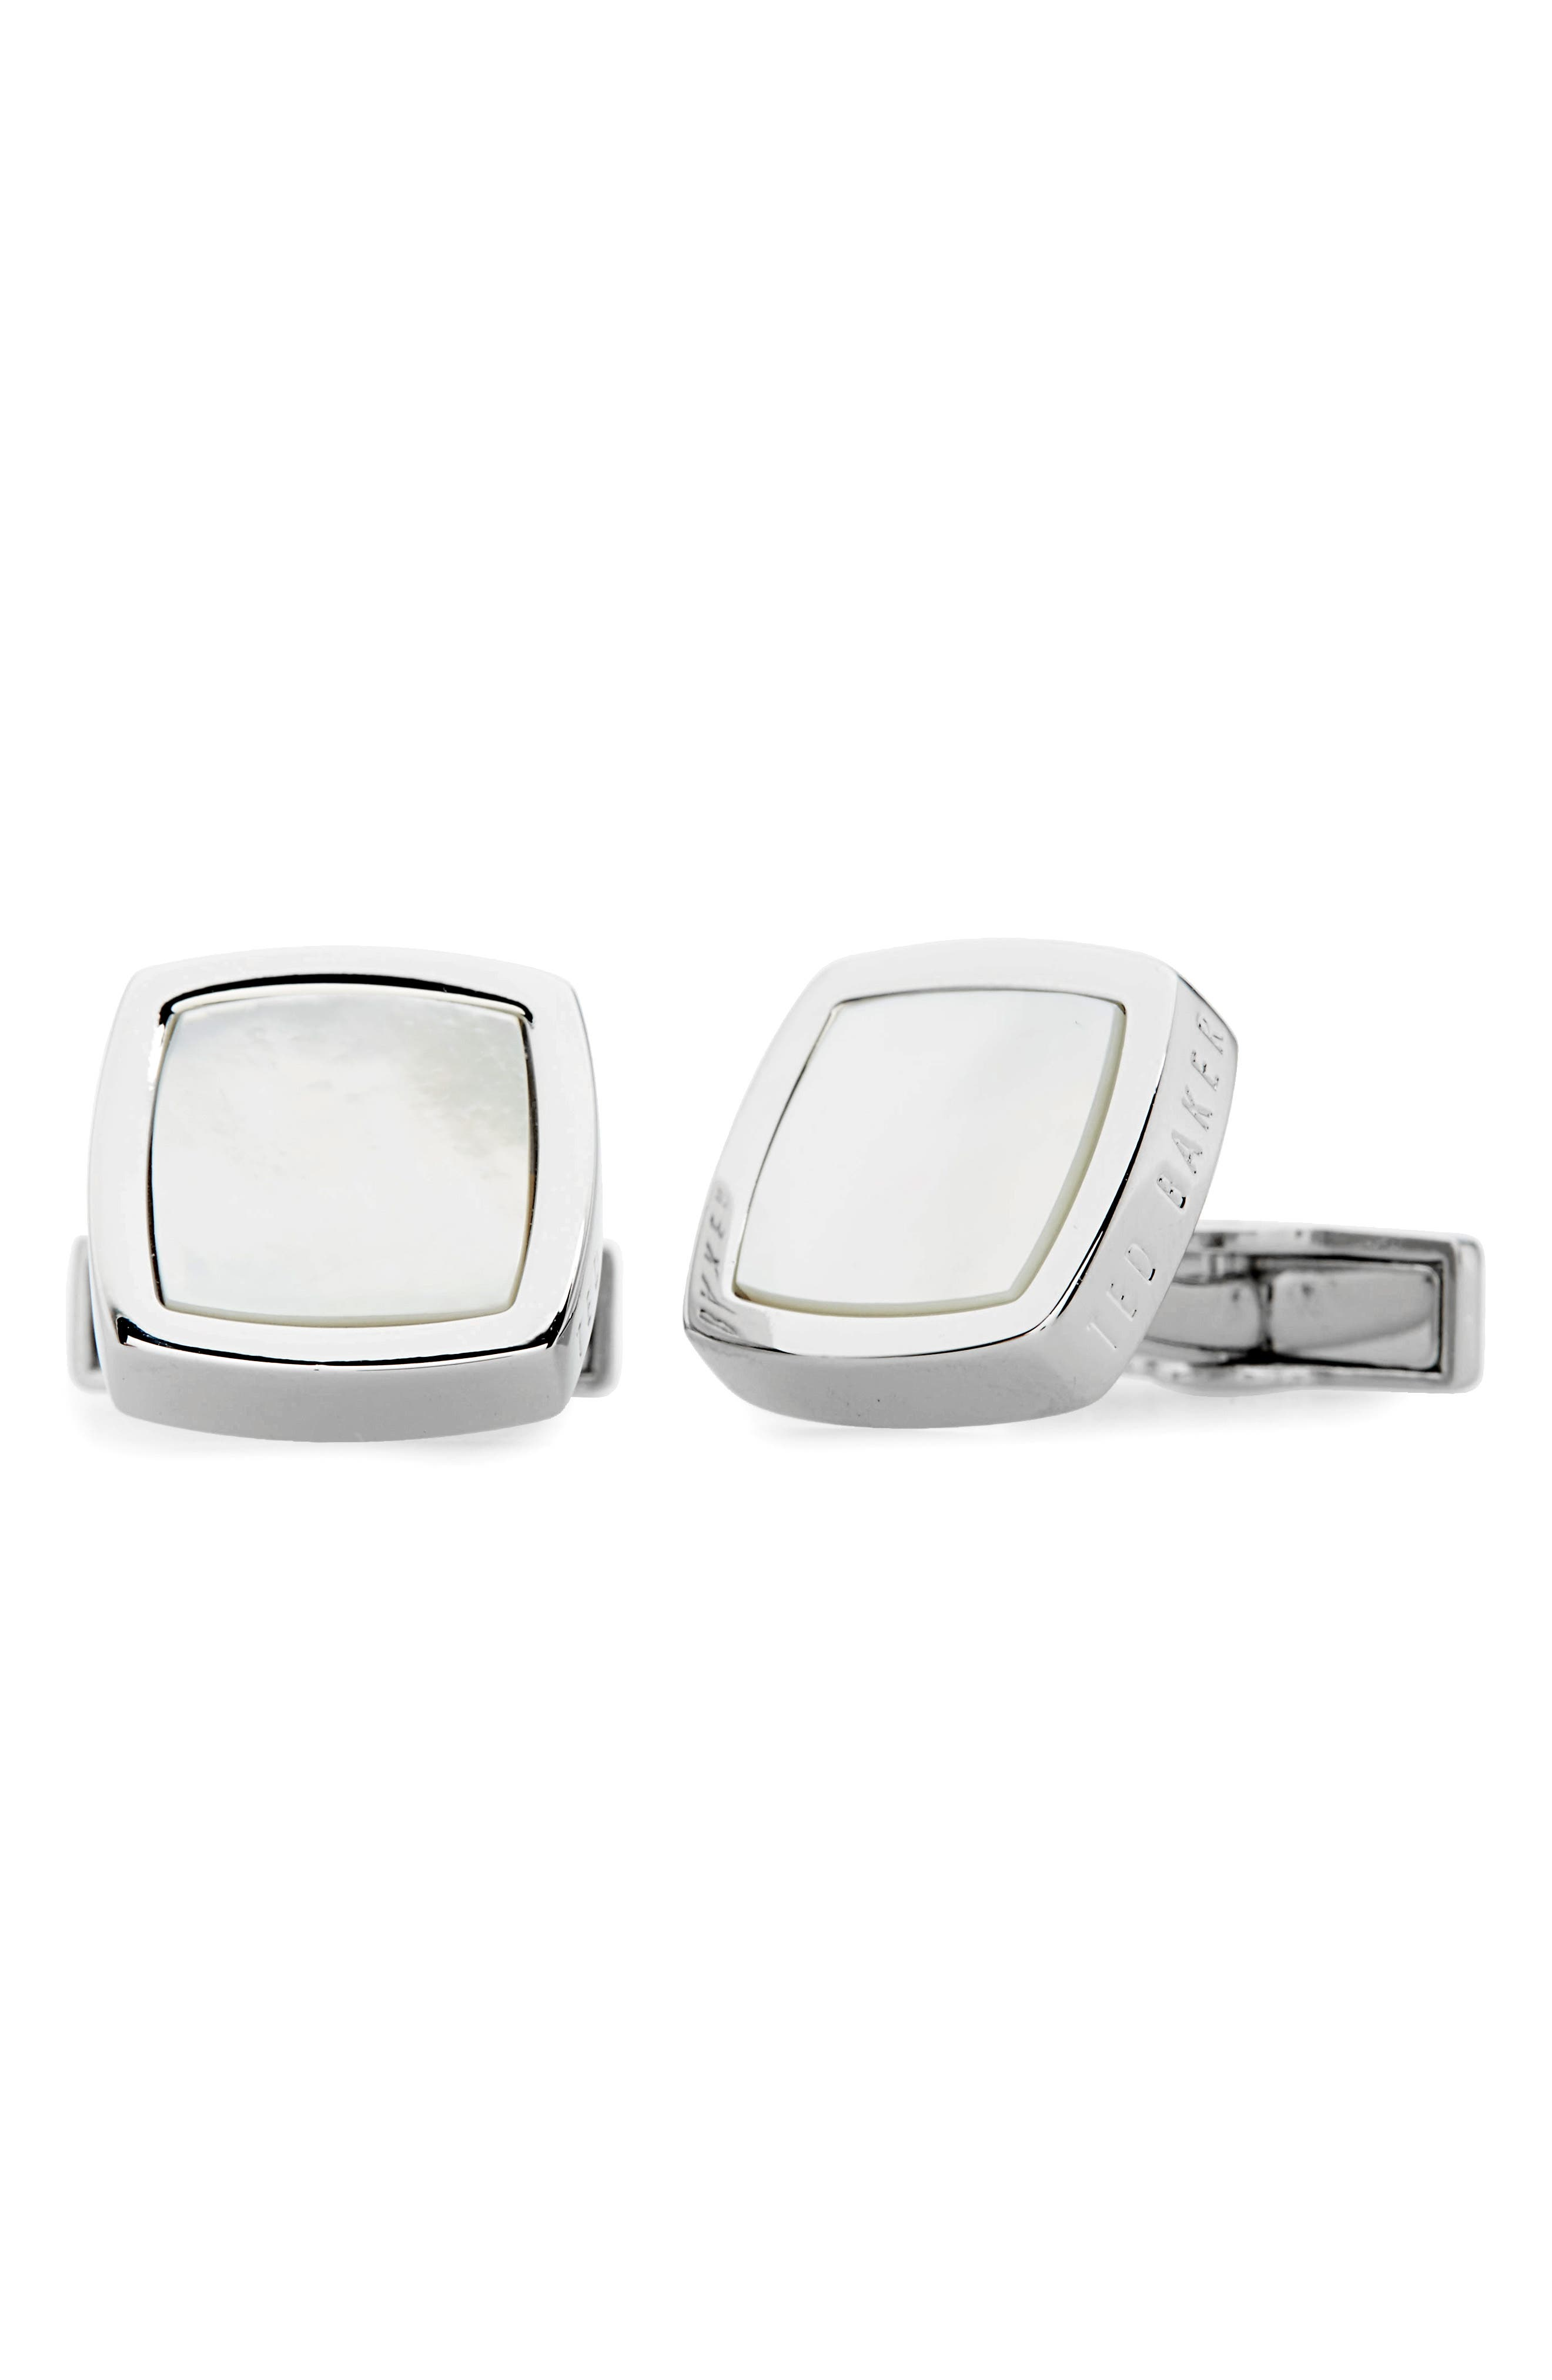 Dedlift Cuff Links,                         Main,                         color, White